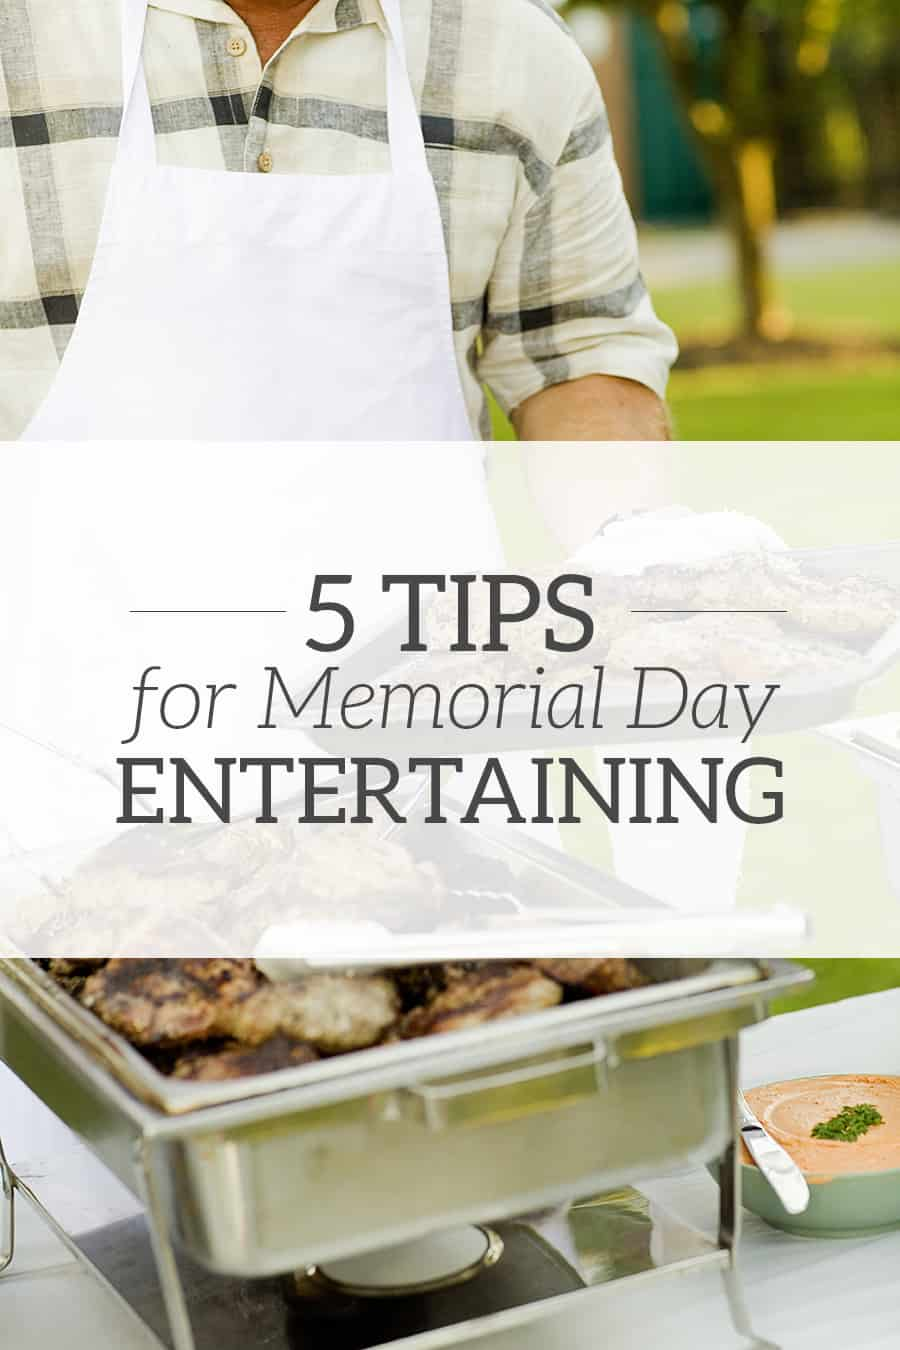 5 tips for Memorial Day entertaining! Make hosting less stressful with these simple hospitality tips.